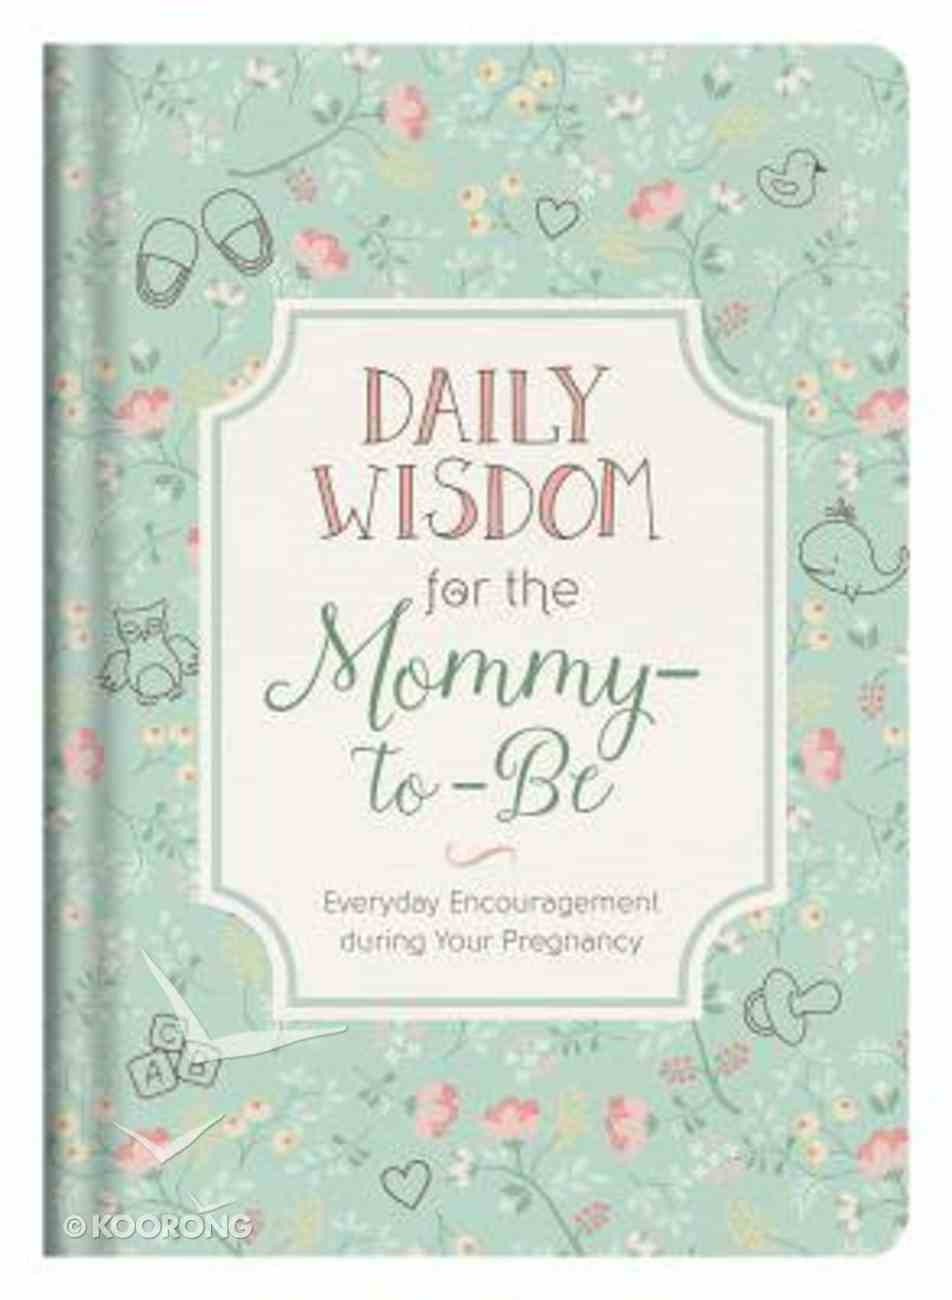 Daily Wisdom For the Mommy-To-Be: Everyday Encouragement During Your Pregnancy Hardback